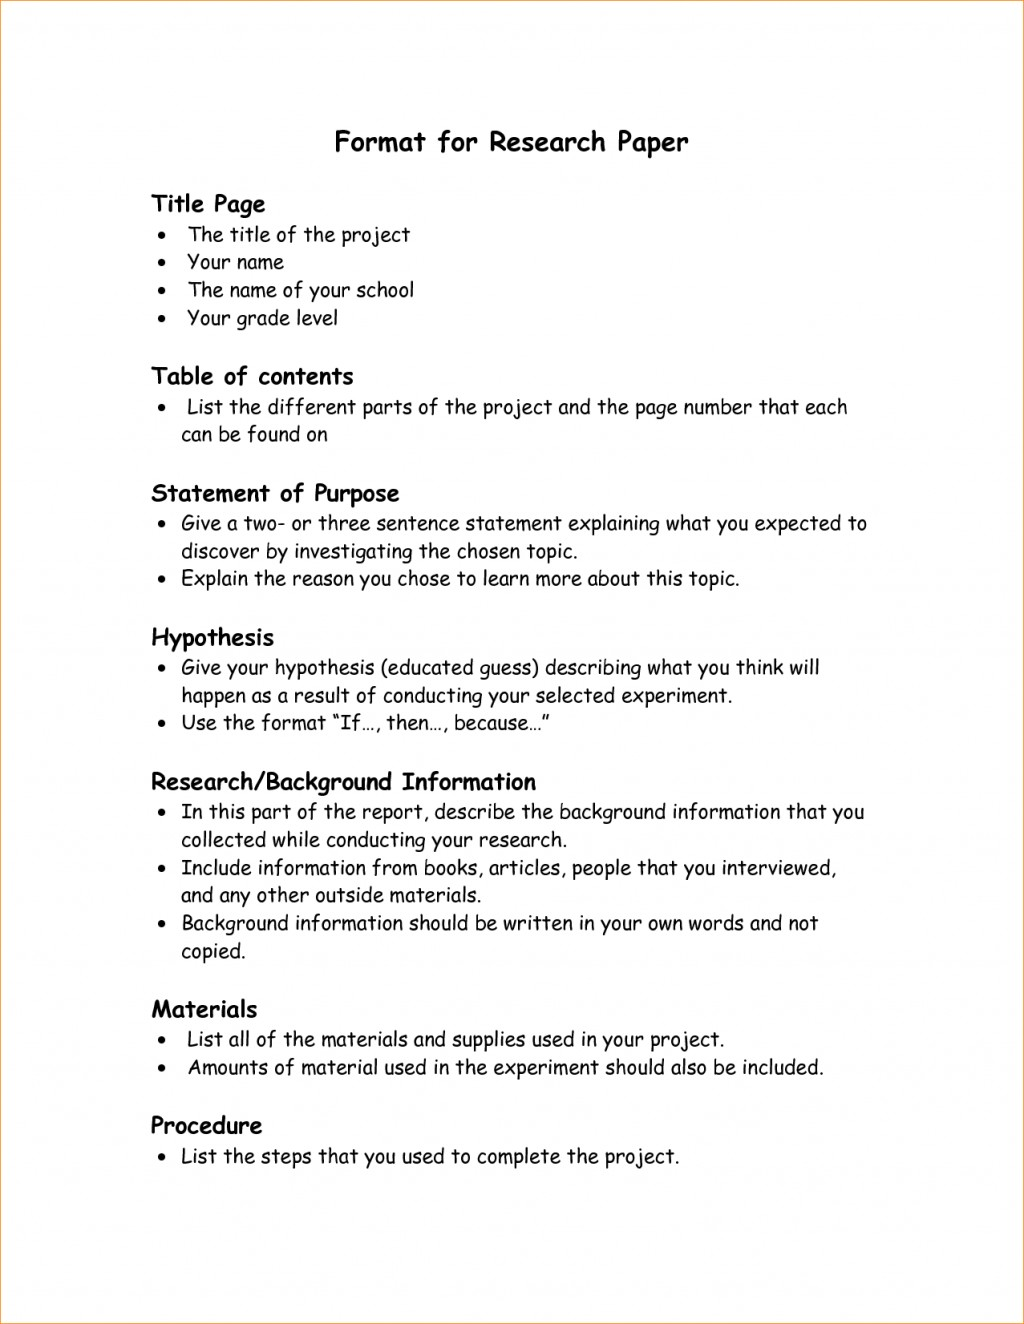 001 Research Paper Format Parts Of Best A Ppt Chapter 1 5 Qualitative Large